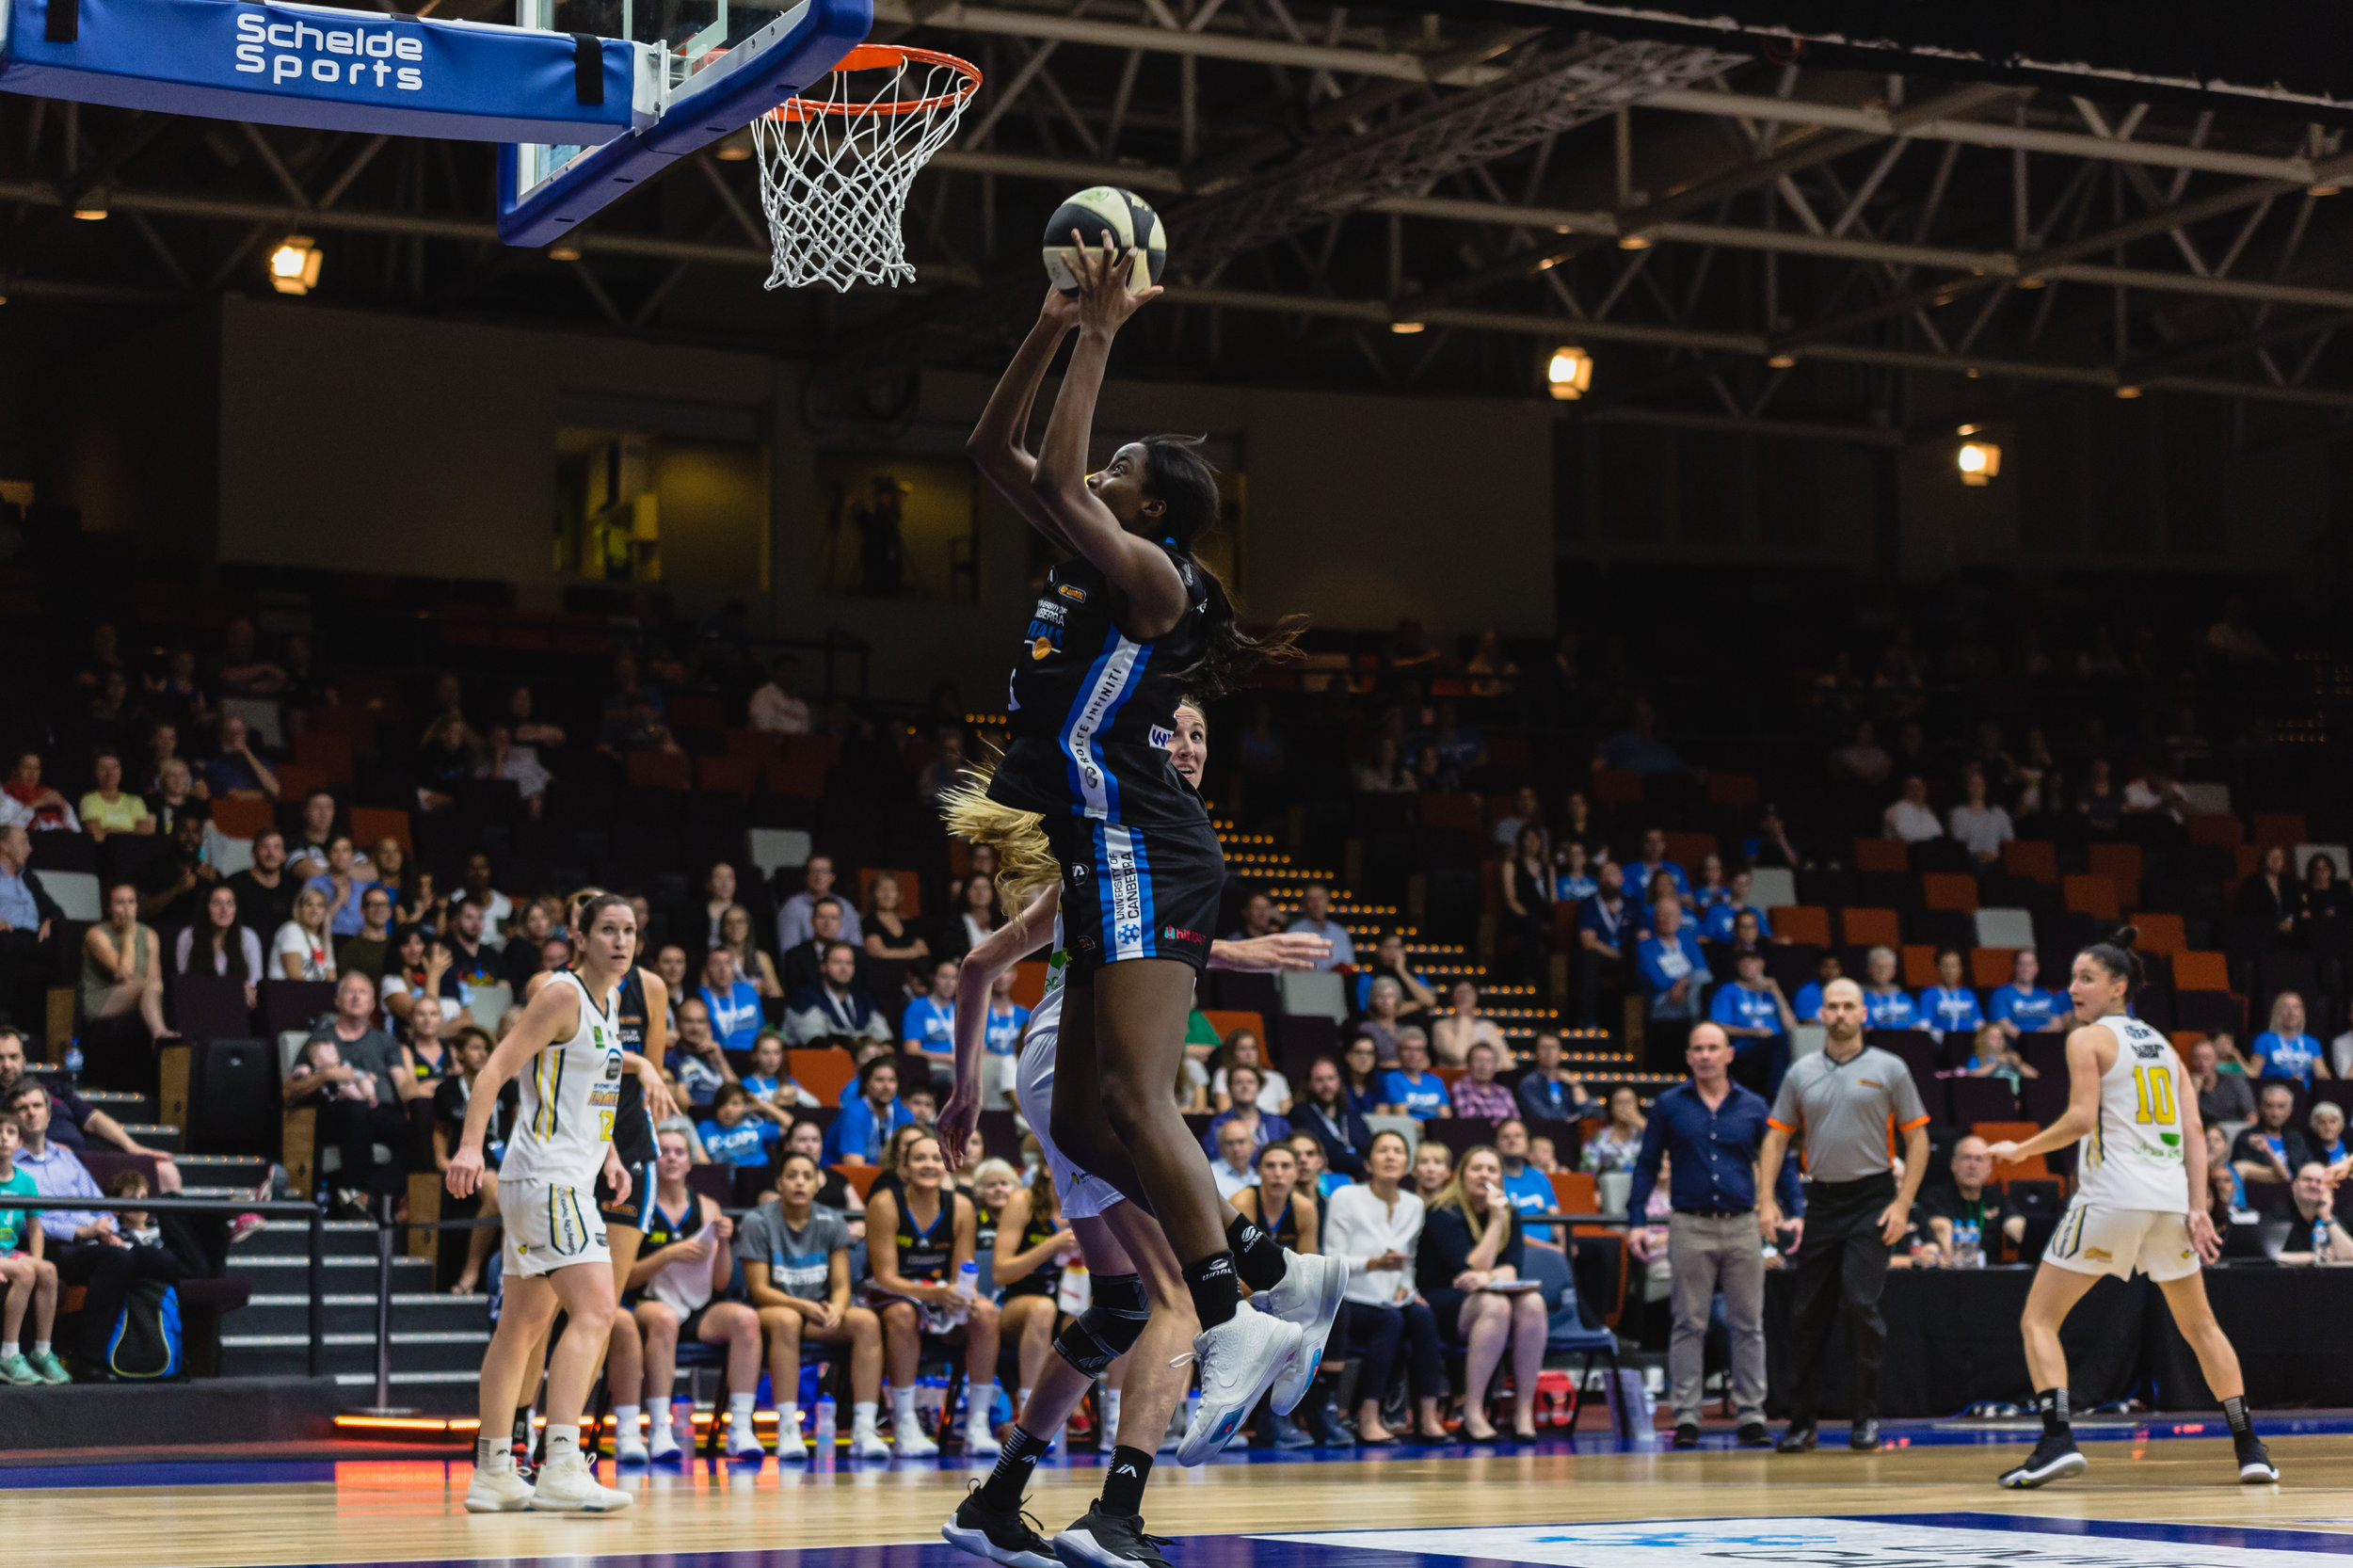 Ezi Magbegor collected 3.75 rebounds per game, but her rebounds per minute numbers were among the best in the league. (Photo: 5 Foot Photography)